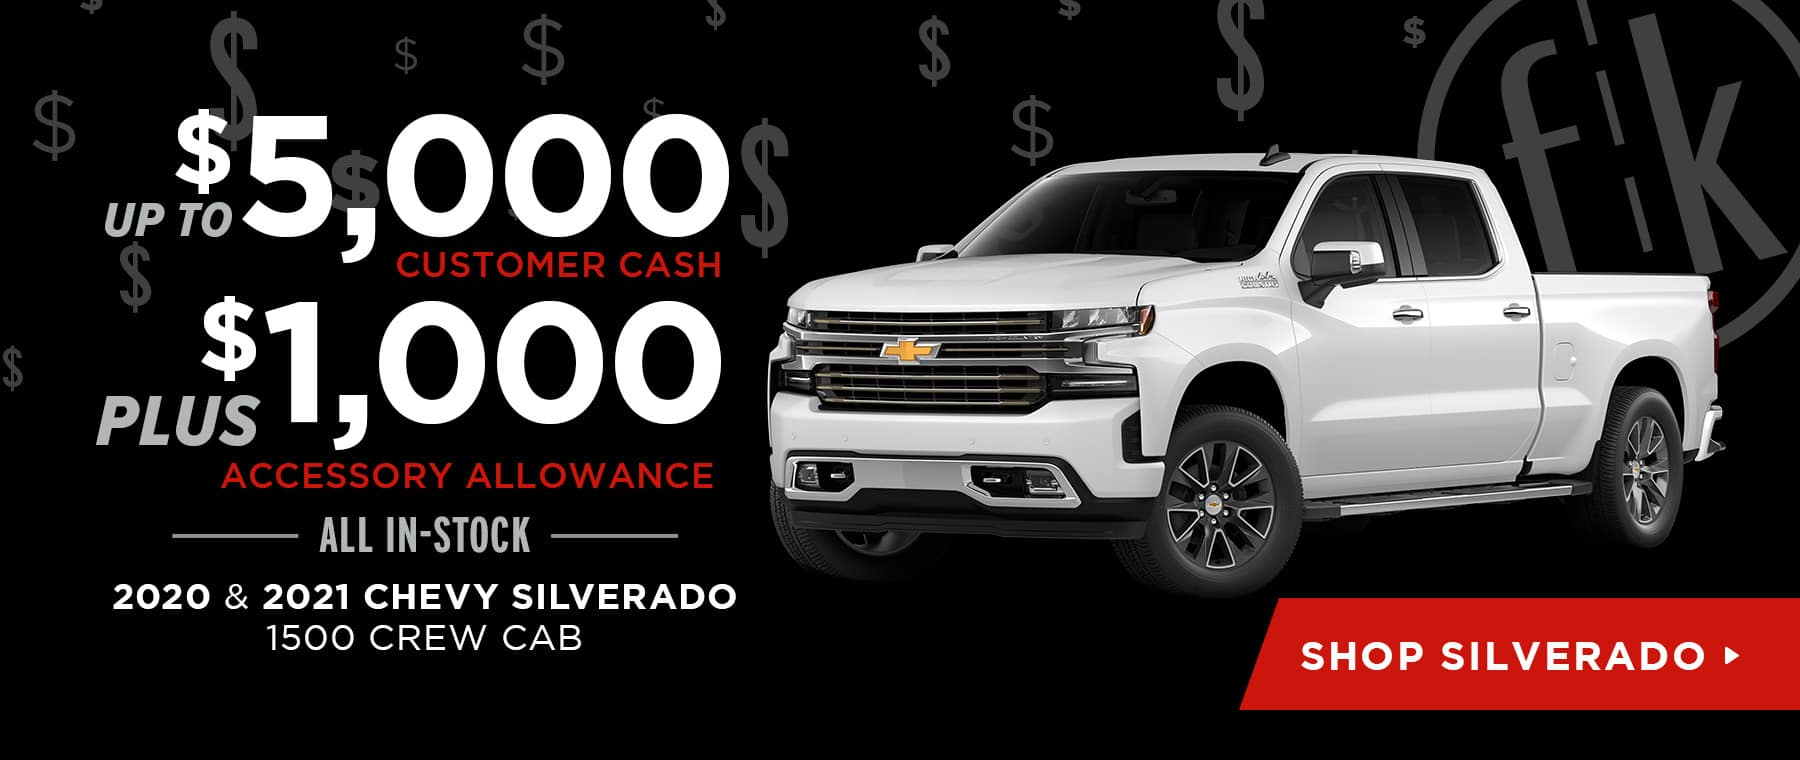 Up To $5,000 Customer Cash PLUS $1,000 Accessory Allowance All In-Stock 2020 & 2021 Chevy Silverado 1500 Crew Cab